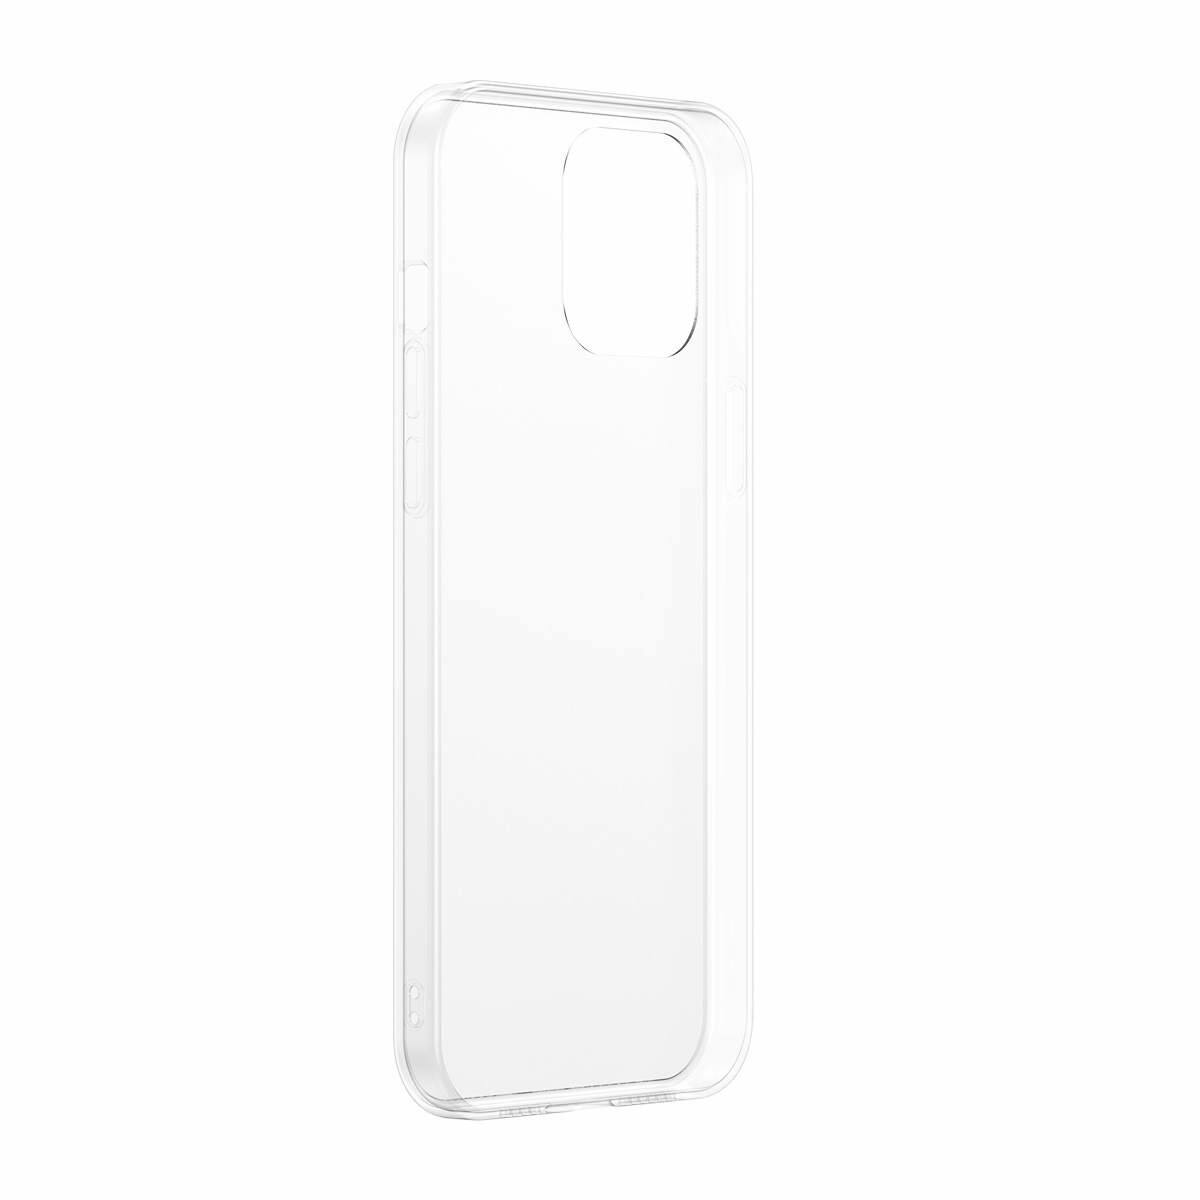 Baseus iPhone 12/12 Pro tok, Frosted Glass, fehér (WIAPIPH61P-WS02)